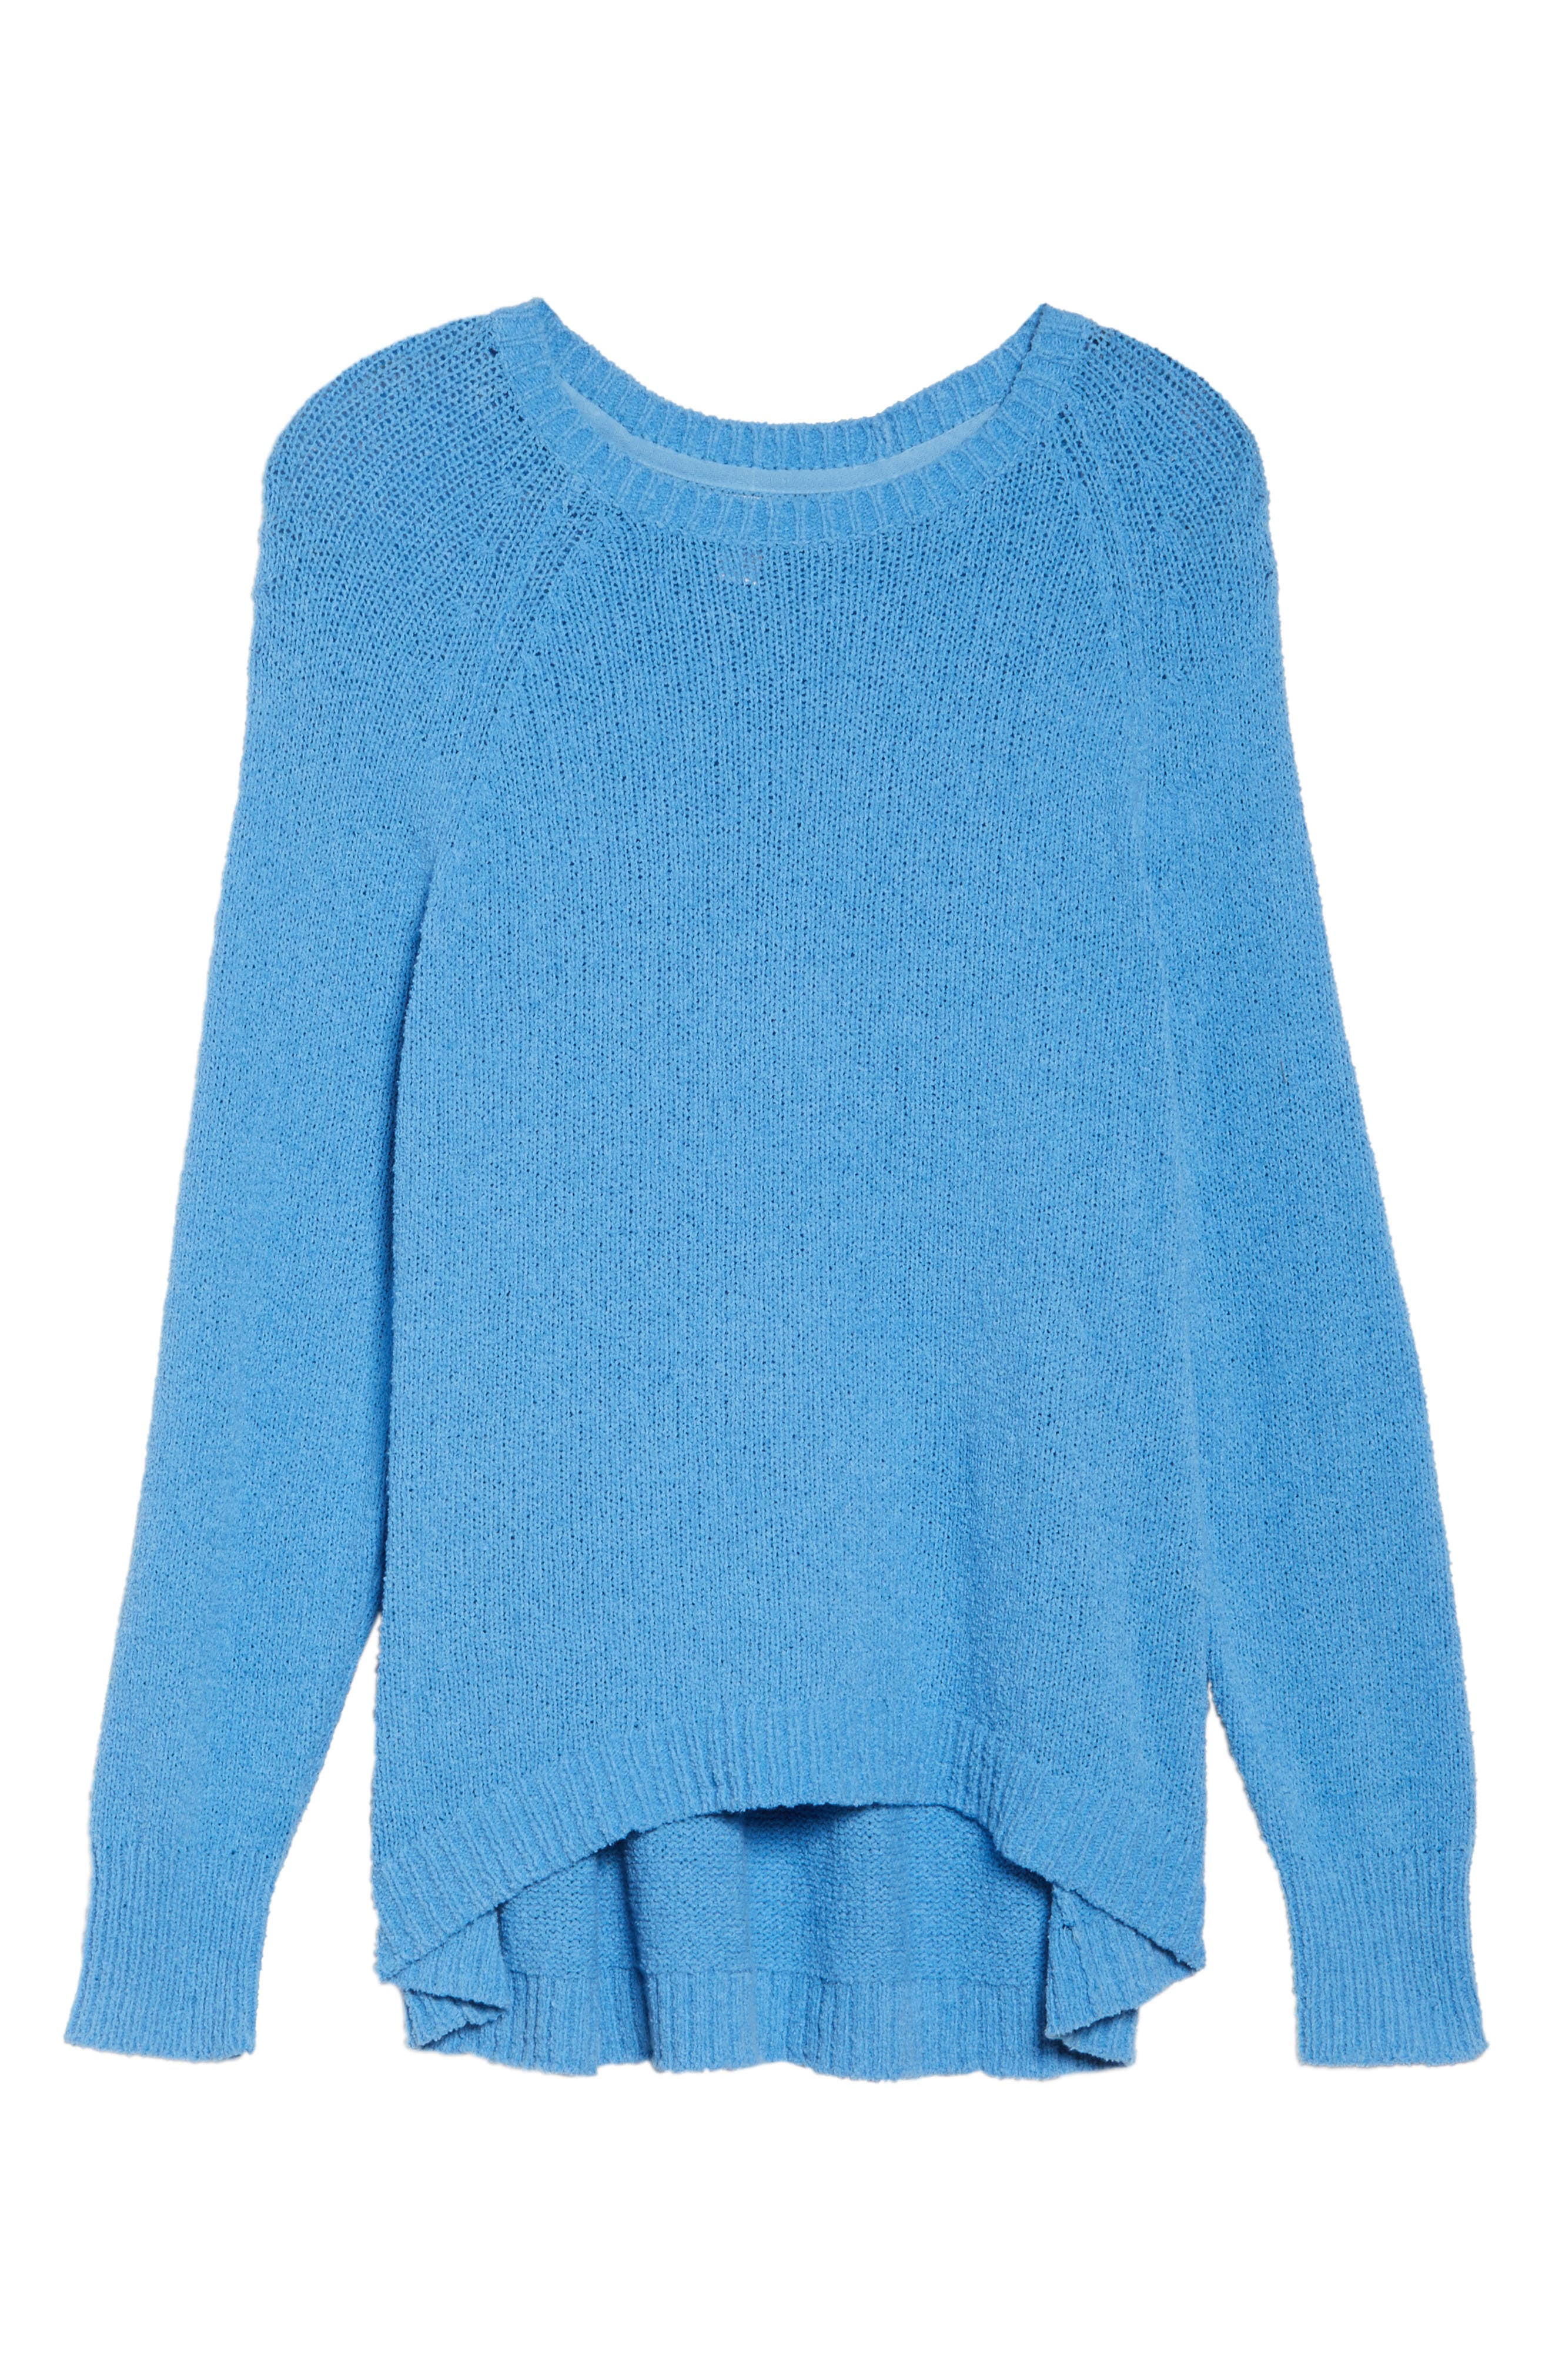 Relaxed Crewneck Sweater,                             Alternate thumbnail 23, color,